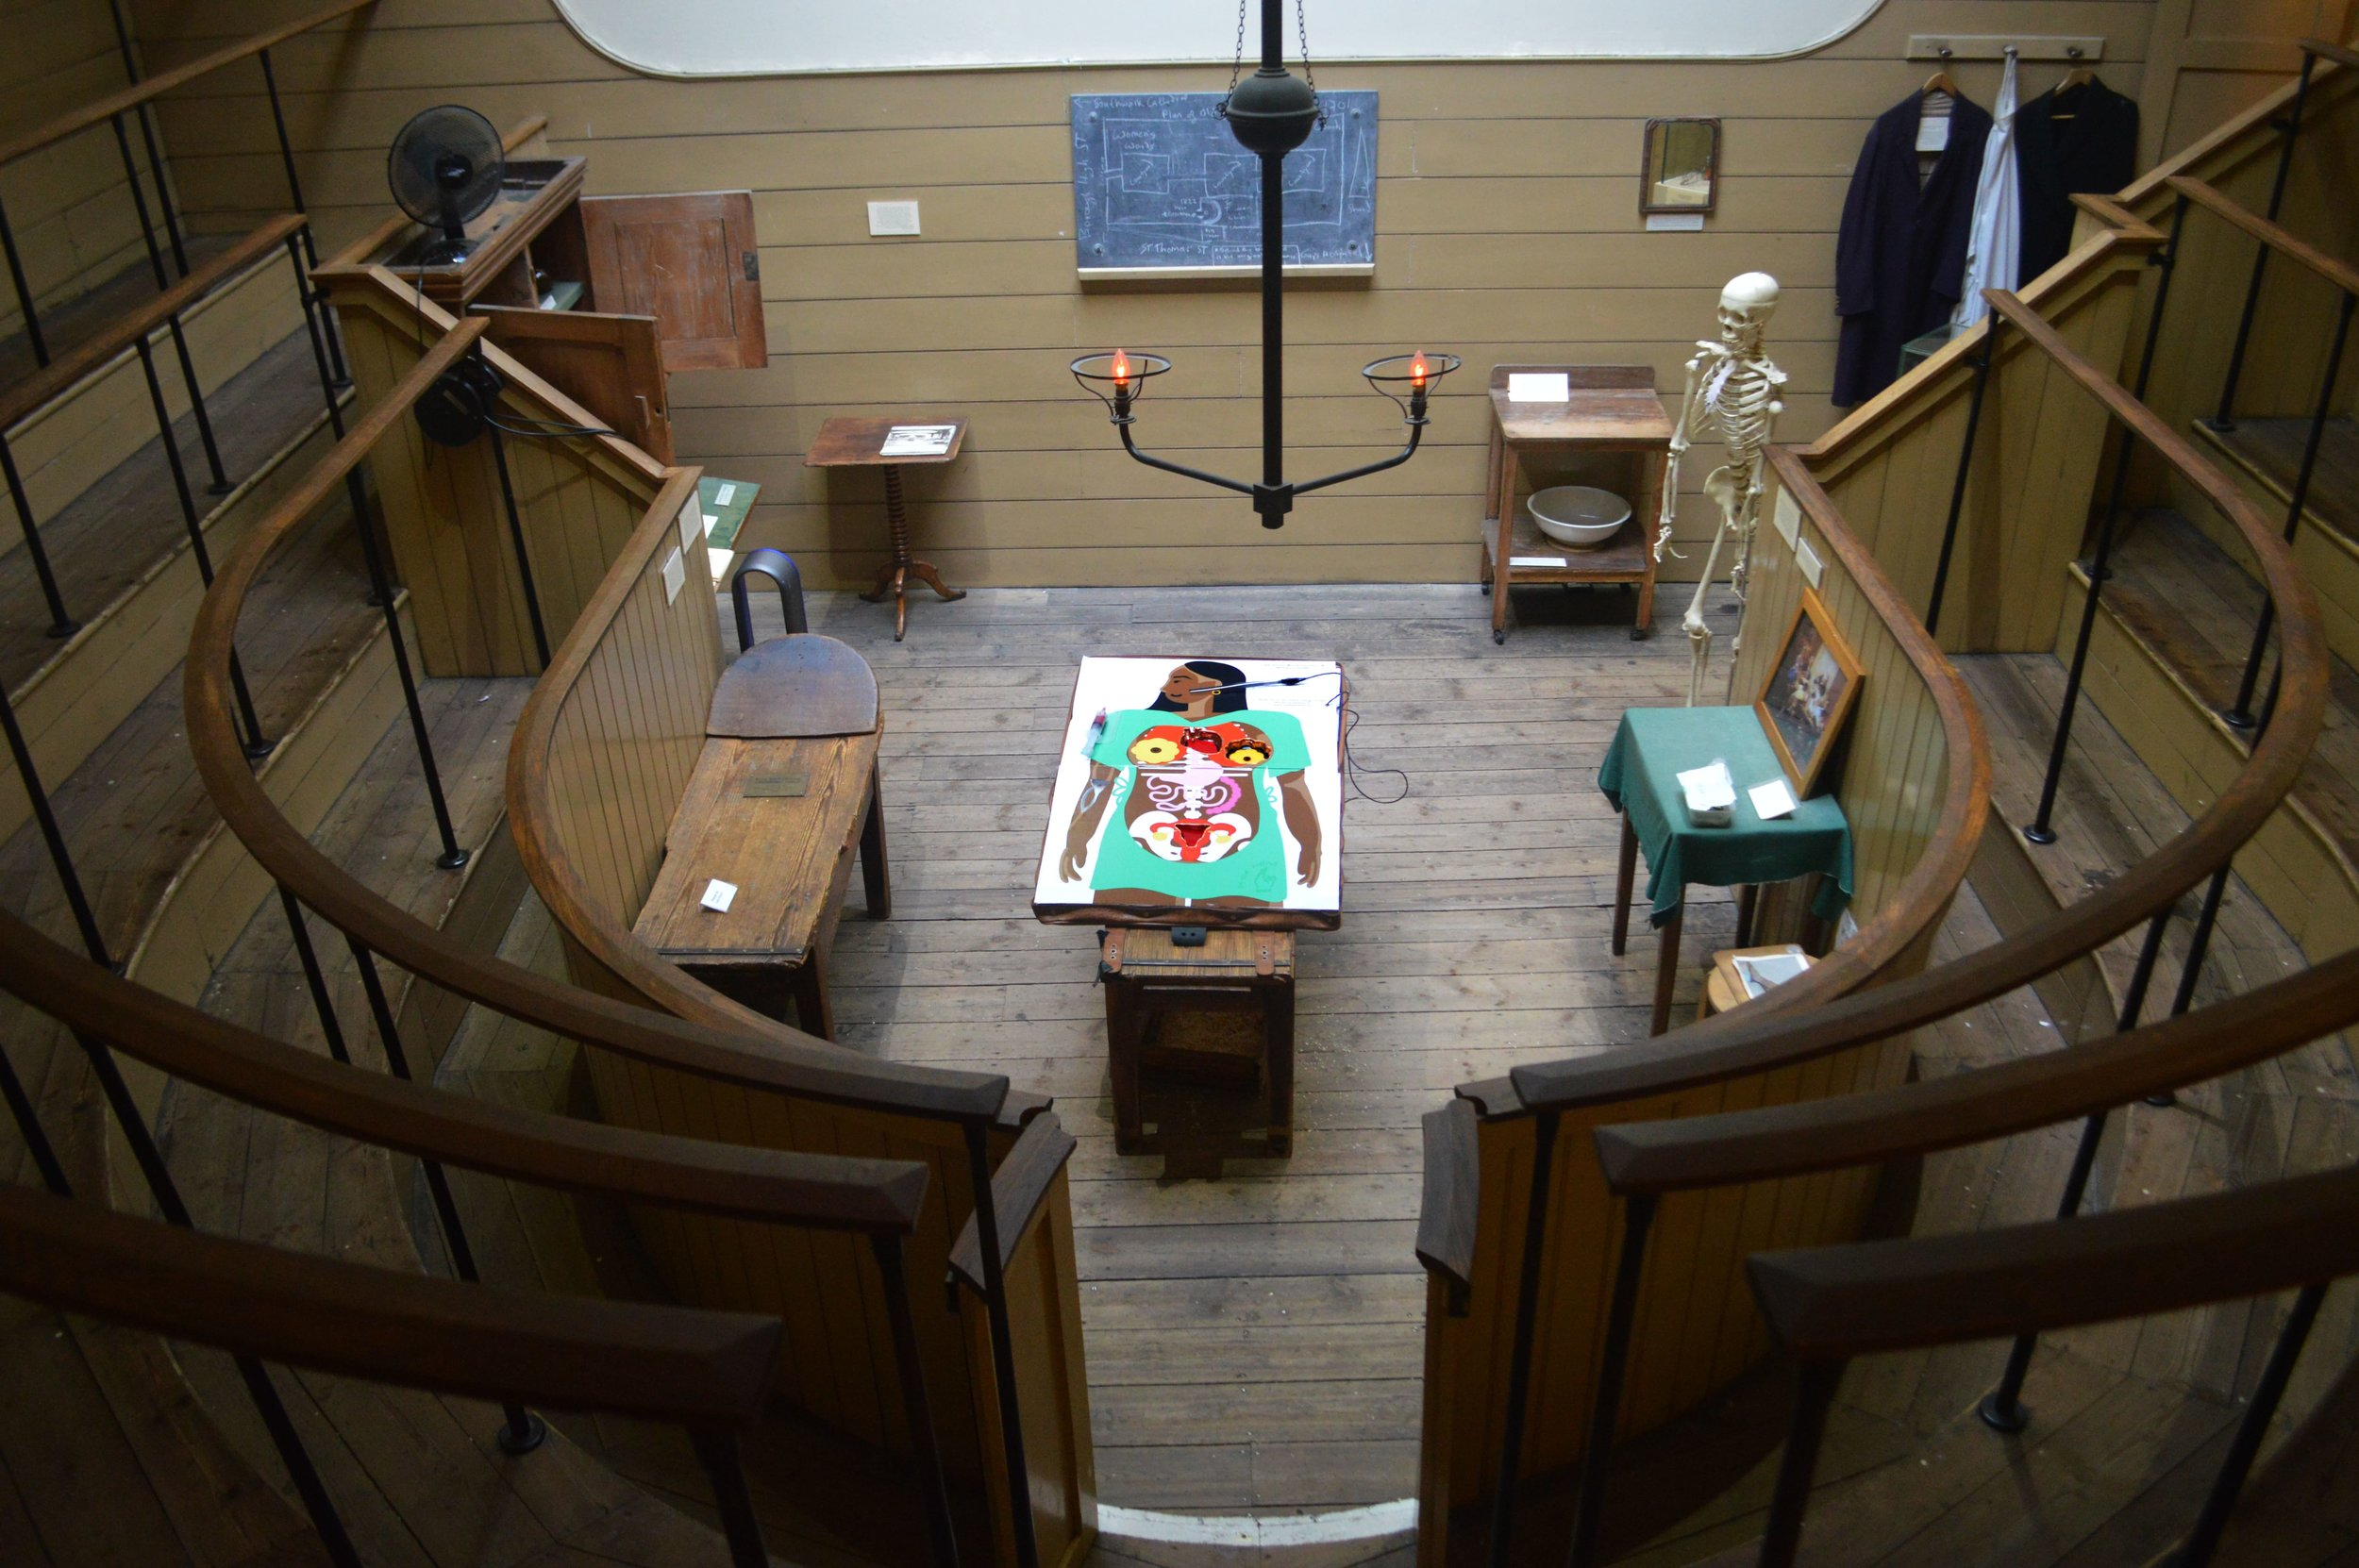 image of operation game in the old operating theatre in london. Birdseye view at an angle